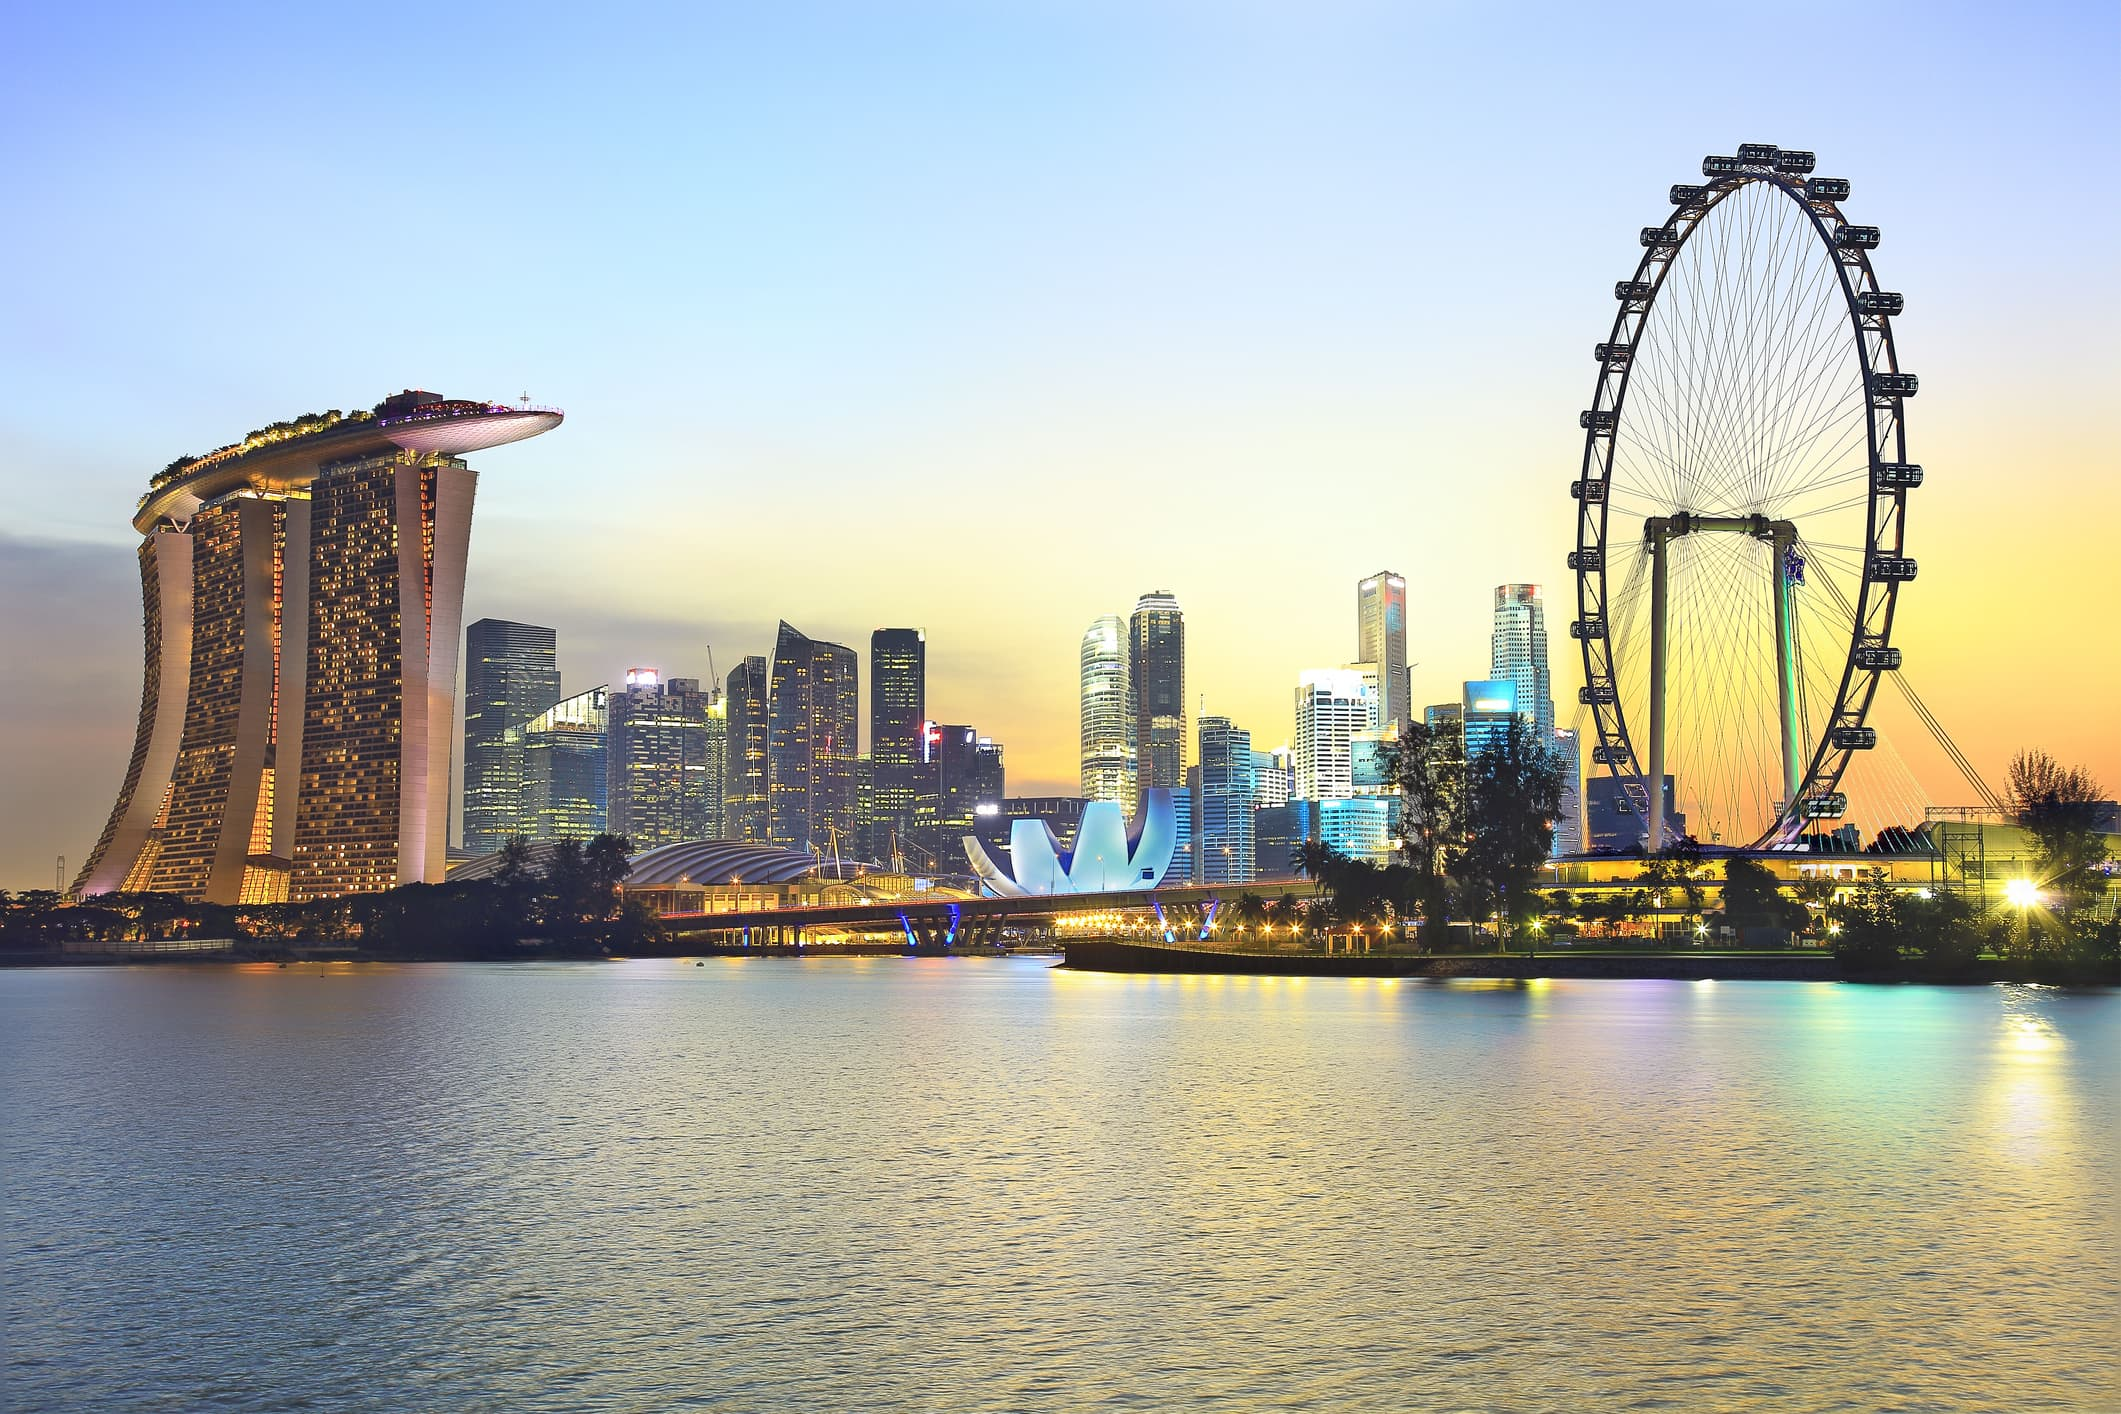 Singapore Holiday with cruise under INR 50,000